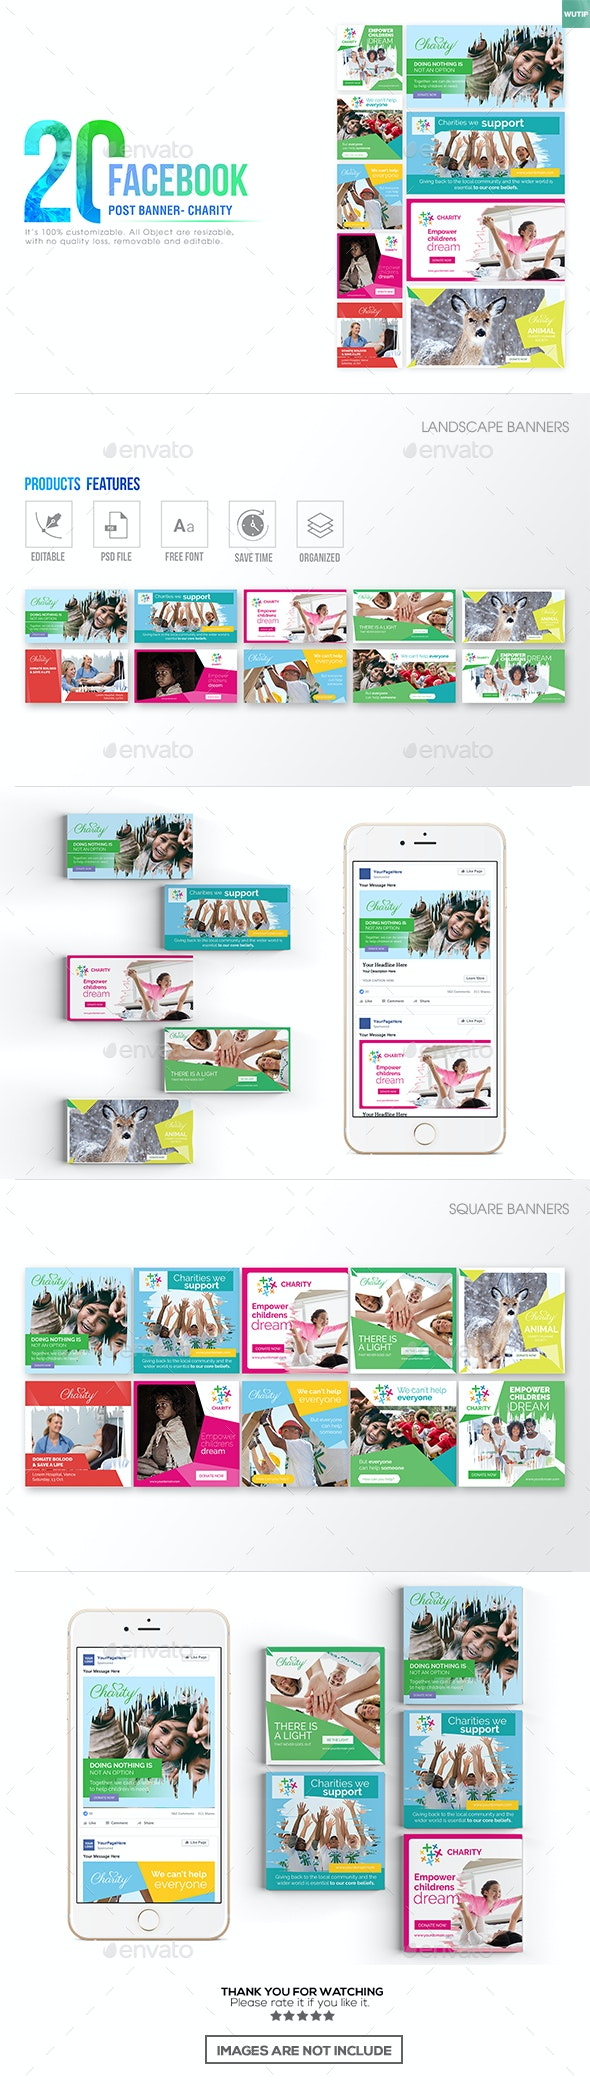 20 Facebook Post Banner - Charity - Miscellaneous Social Media